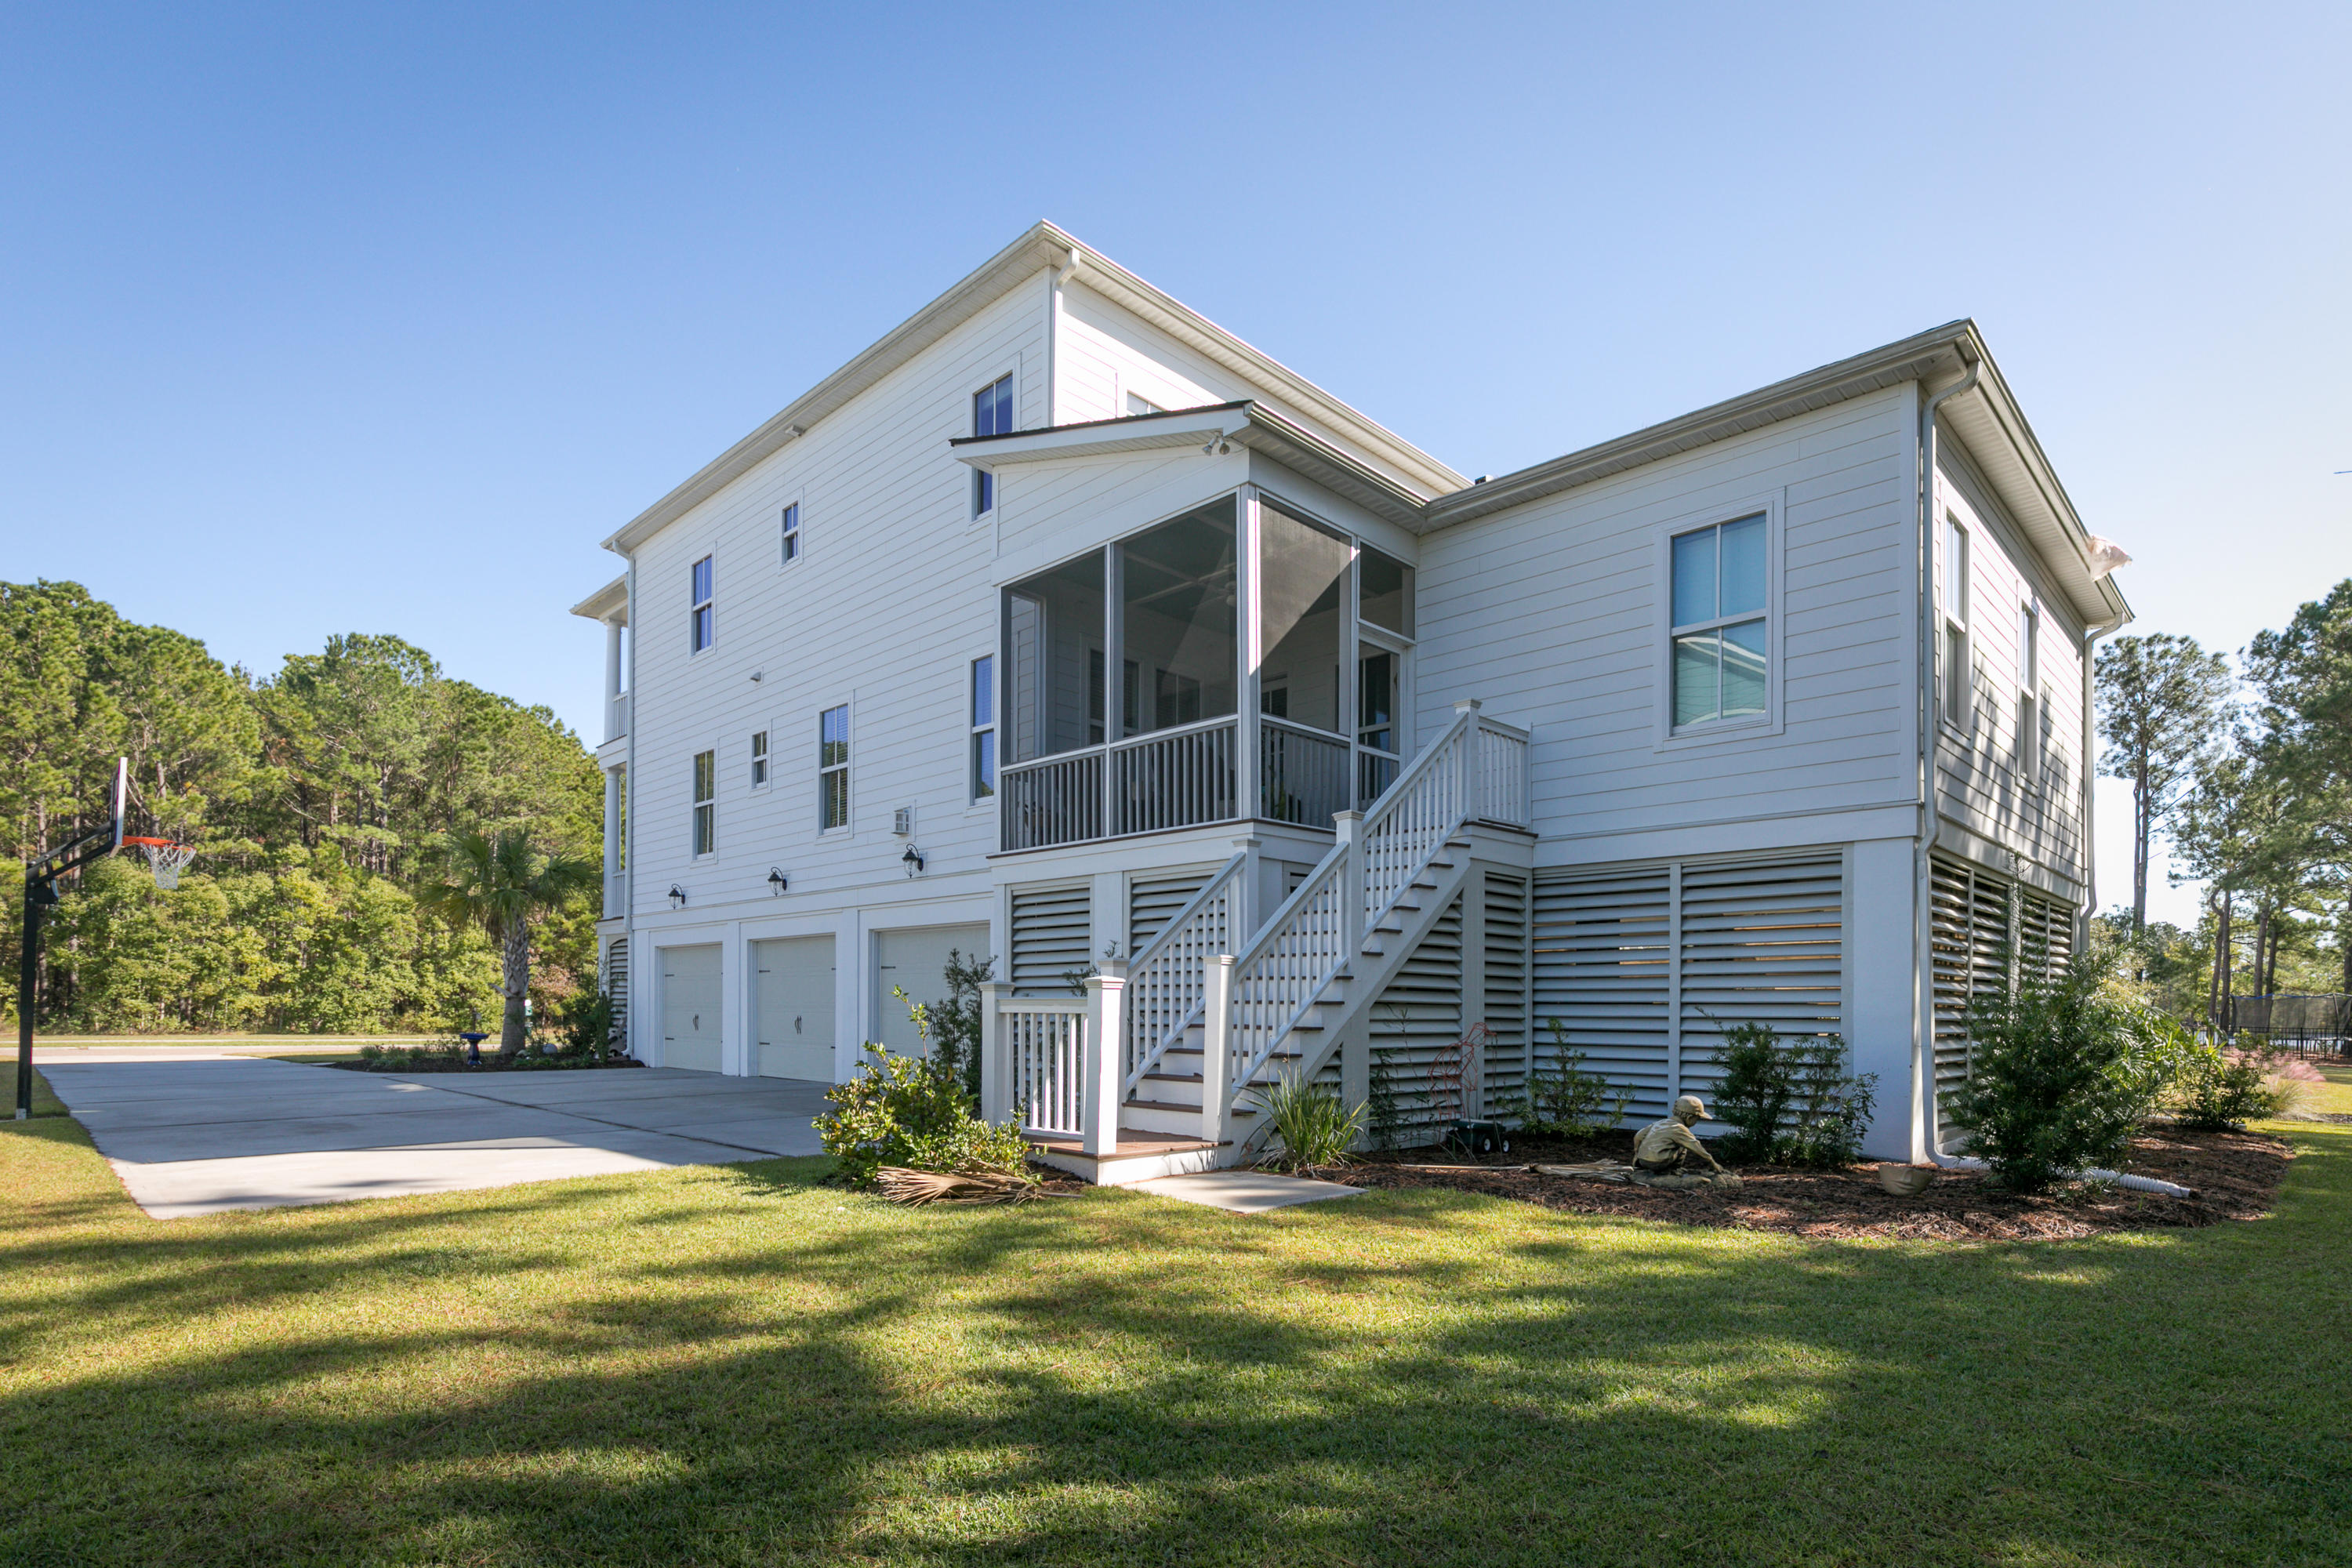 Rivertowne Country Club Homes For Sale - 1548 Rivertowne Country Club, Mount Pleasant, SC - 25